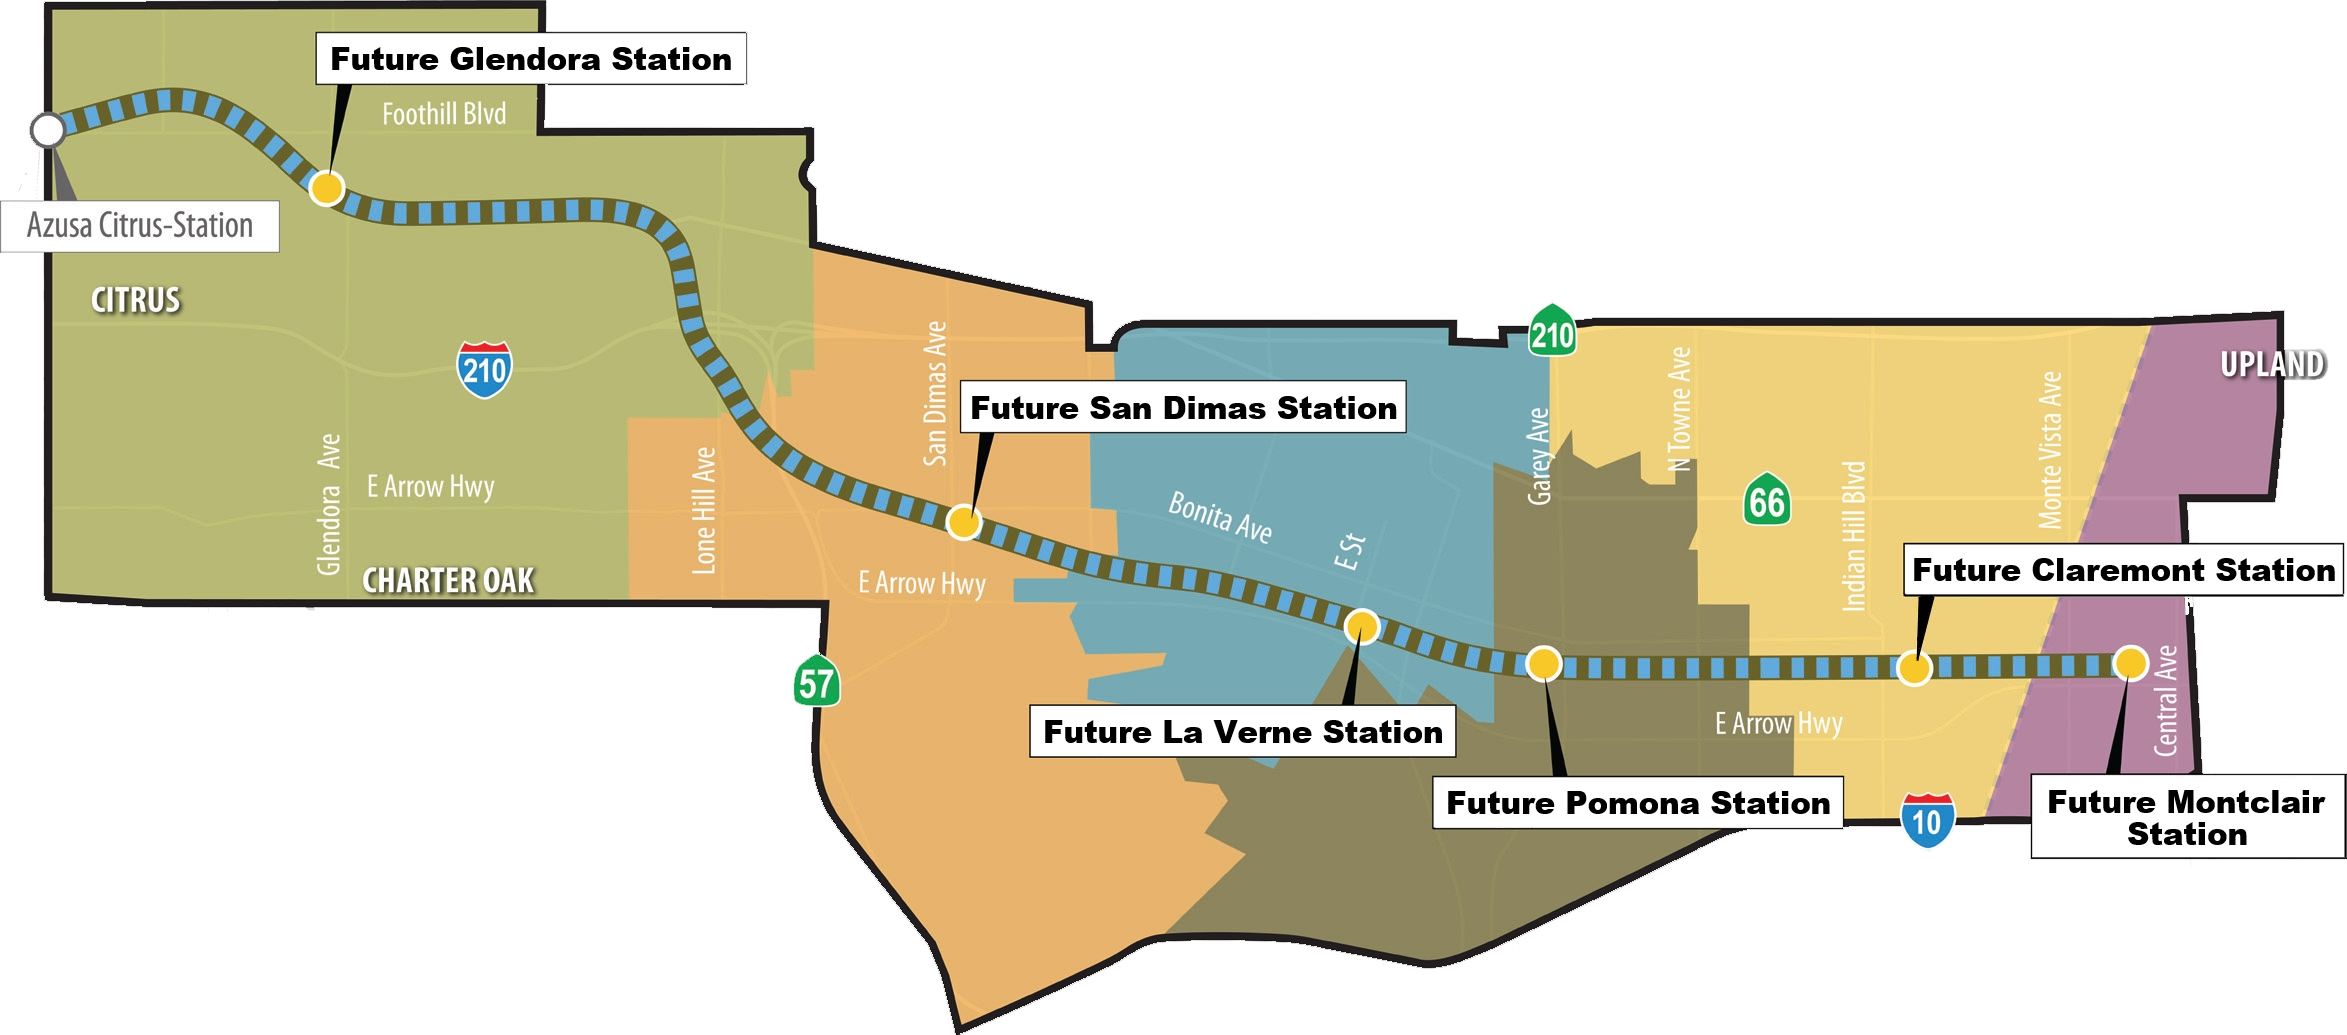 Measure M Gold Line Extension To Claremont The Source